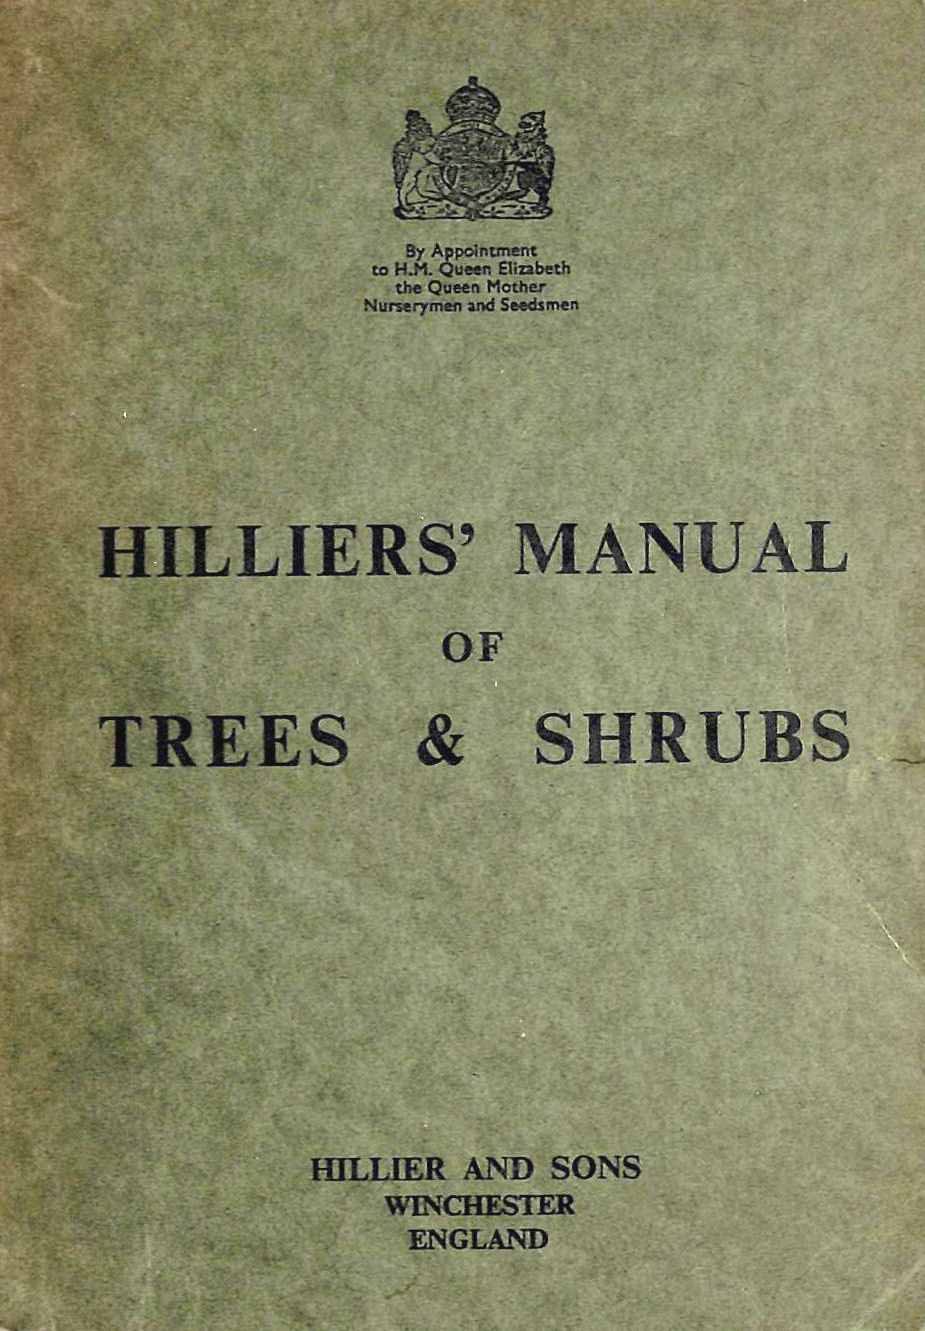 Image for Hilliers' Manual of Trees and Shrubs